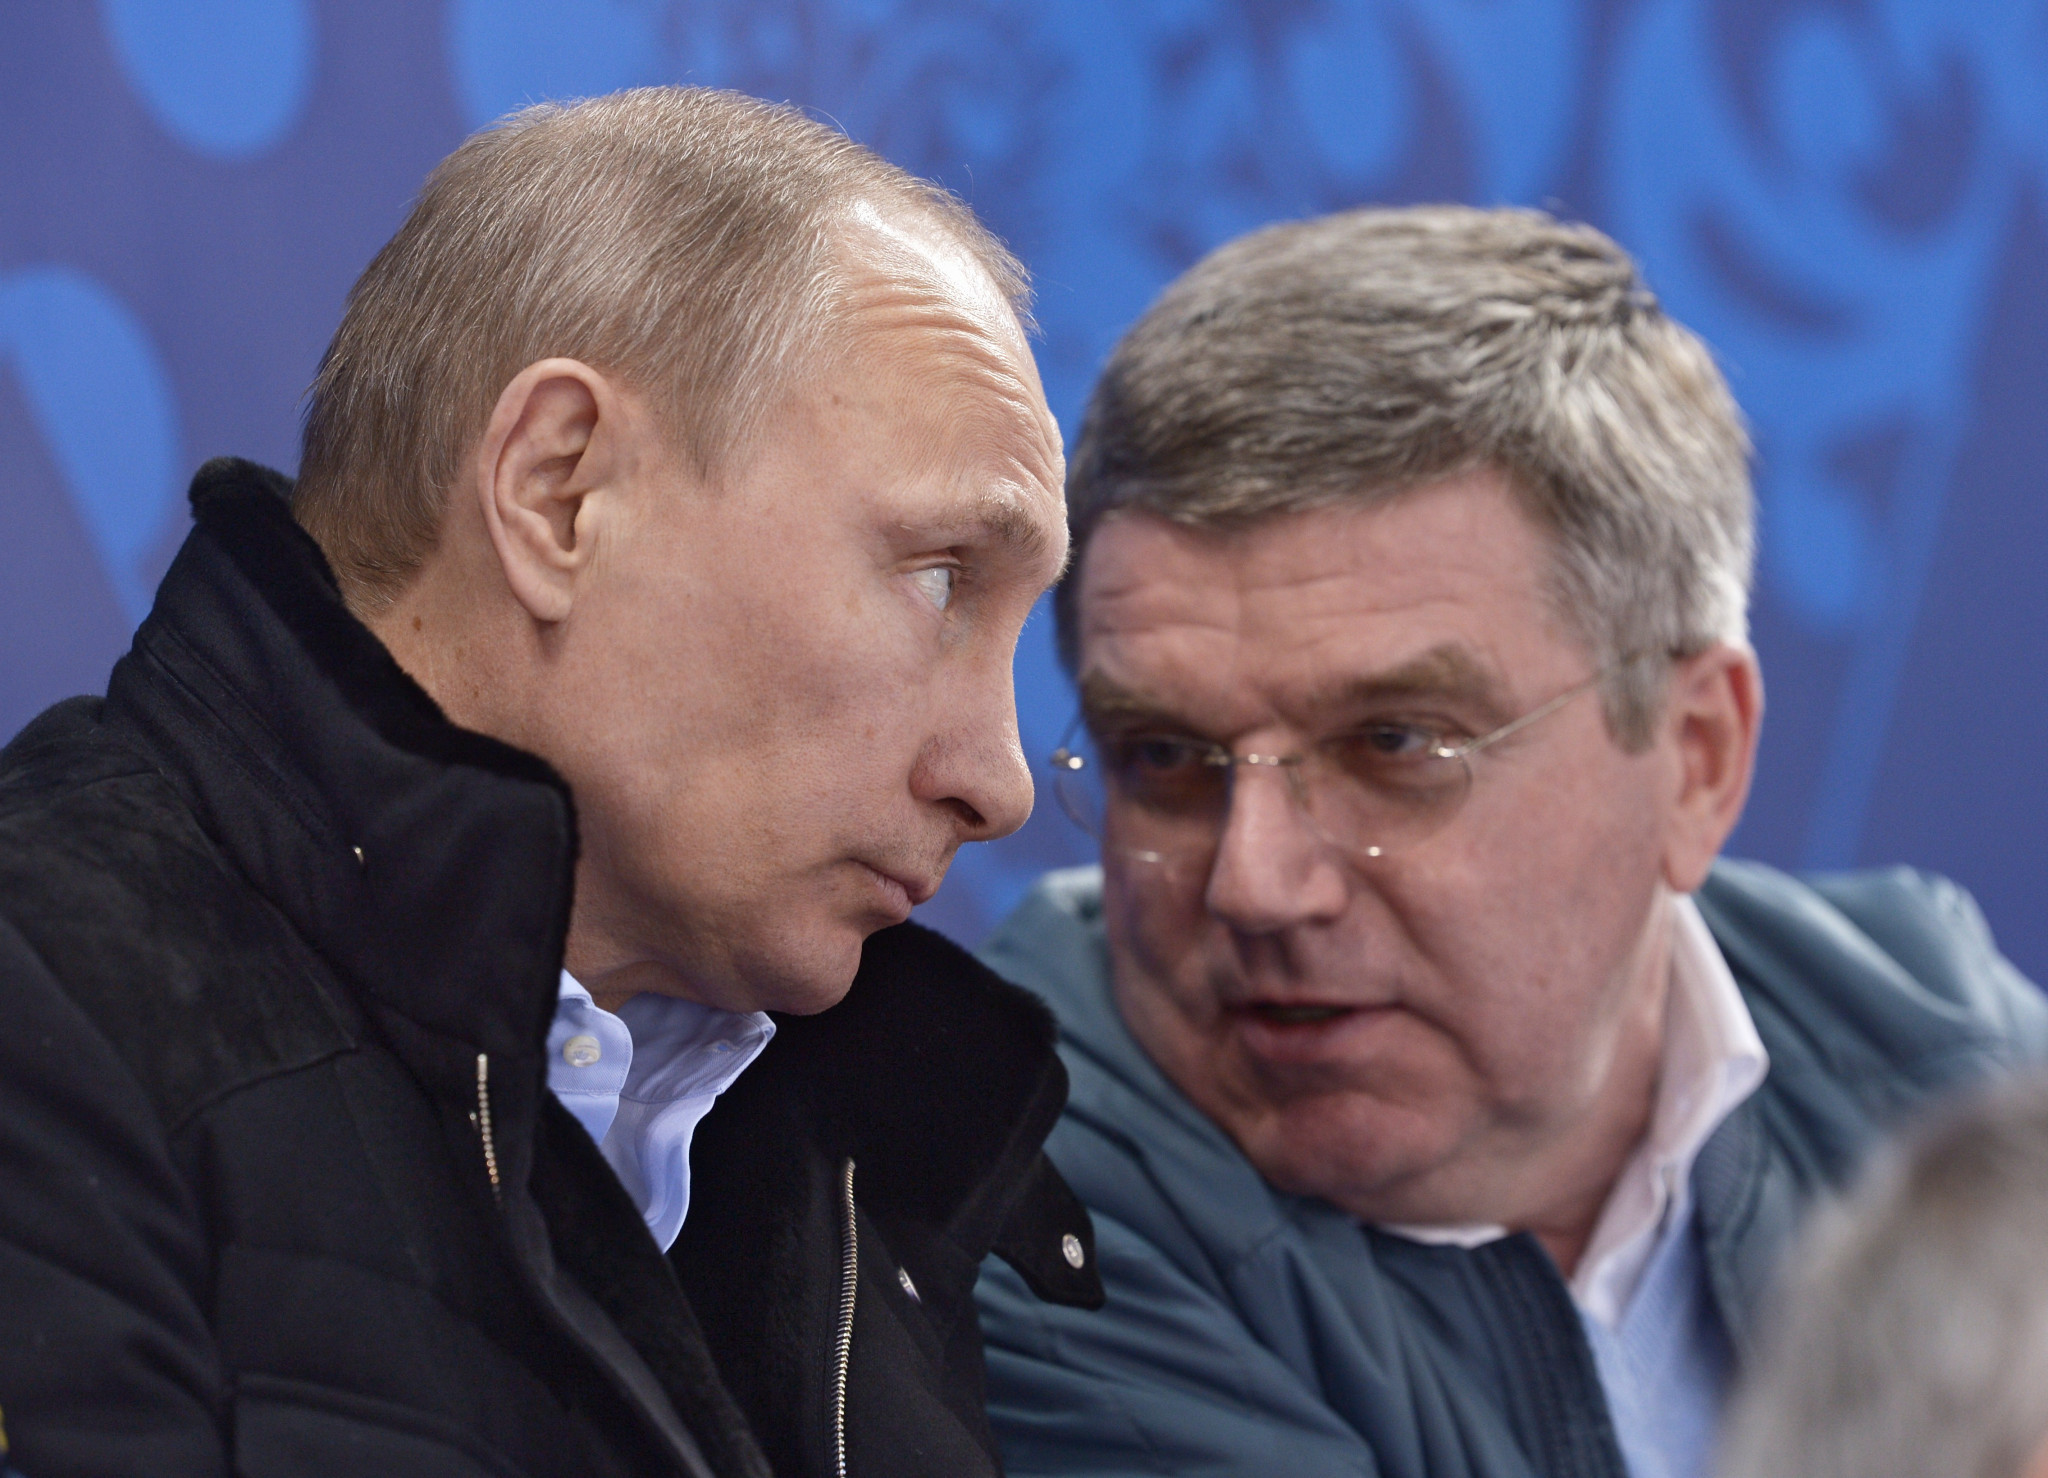 Russian President Vladimir Putin and IOC counterpart Thomas Bach during Sochi 2014 ©Getty Images